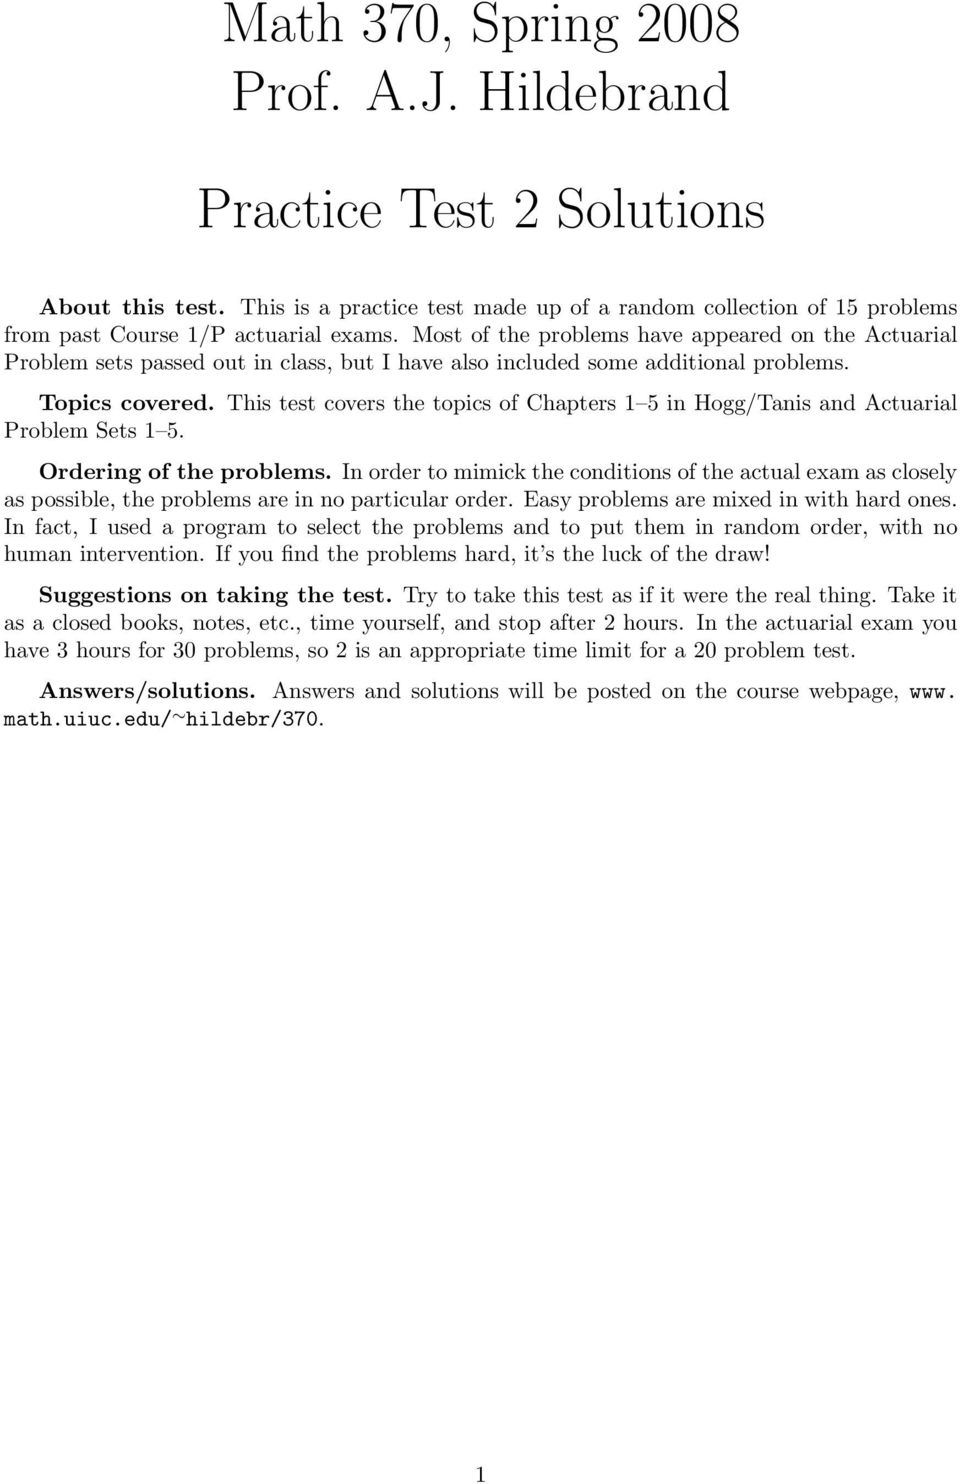 This test covers the topics of Chapters 5 in Hogg/Tanis and Actuarial Problem Sets 5. Ordering of the problems.